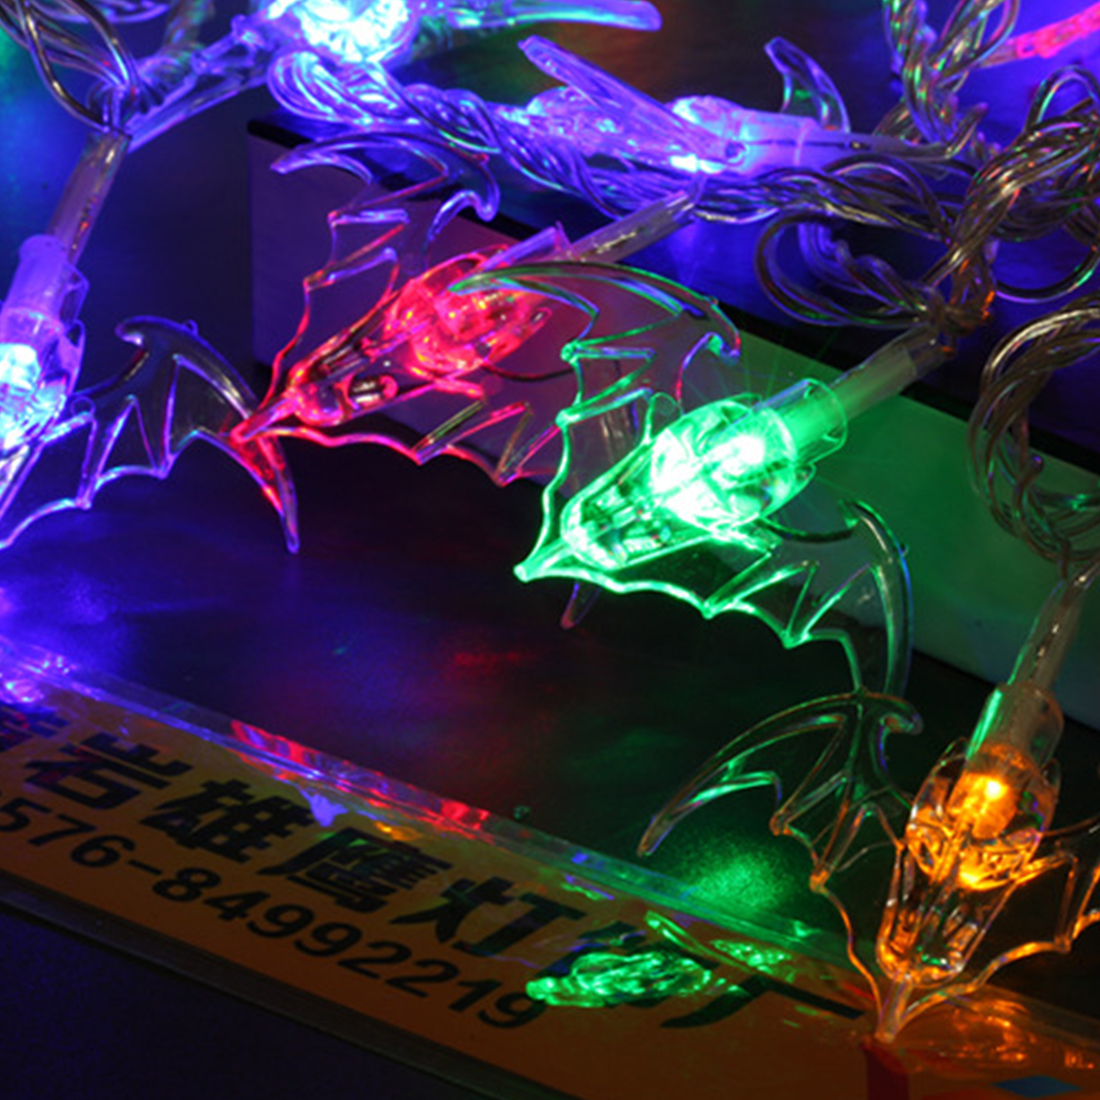 For Christmas Party Outdoor Decorations LED Holiday Lights